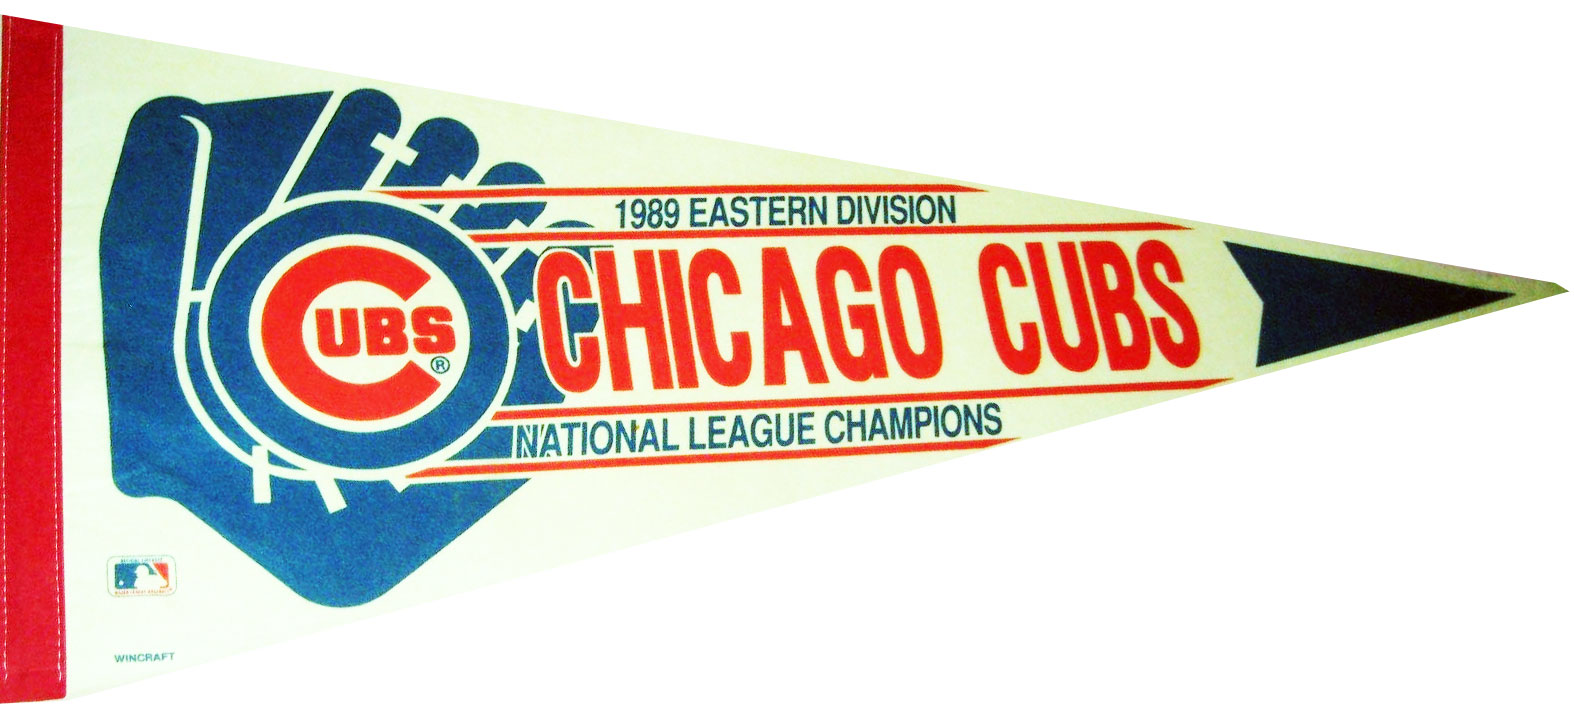 Chicago Cubs Pennant Pennant (1989) - 1989 NL East Champs pennant SportsLogos.Net